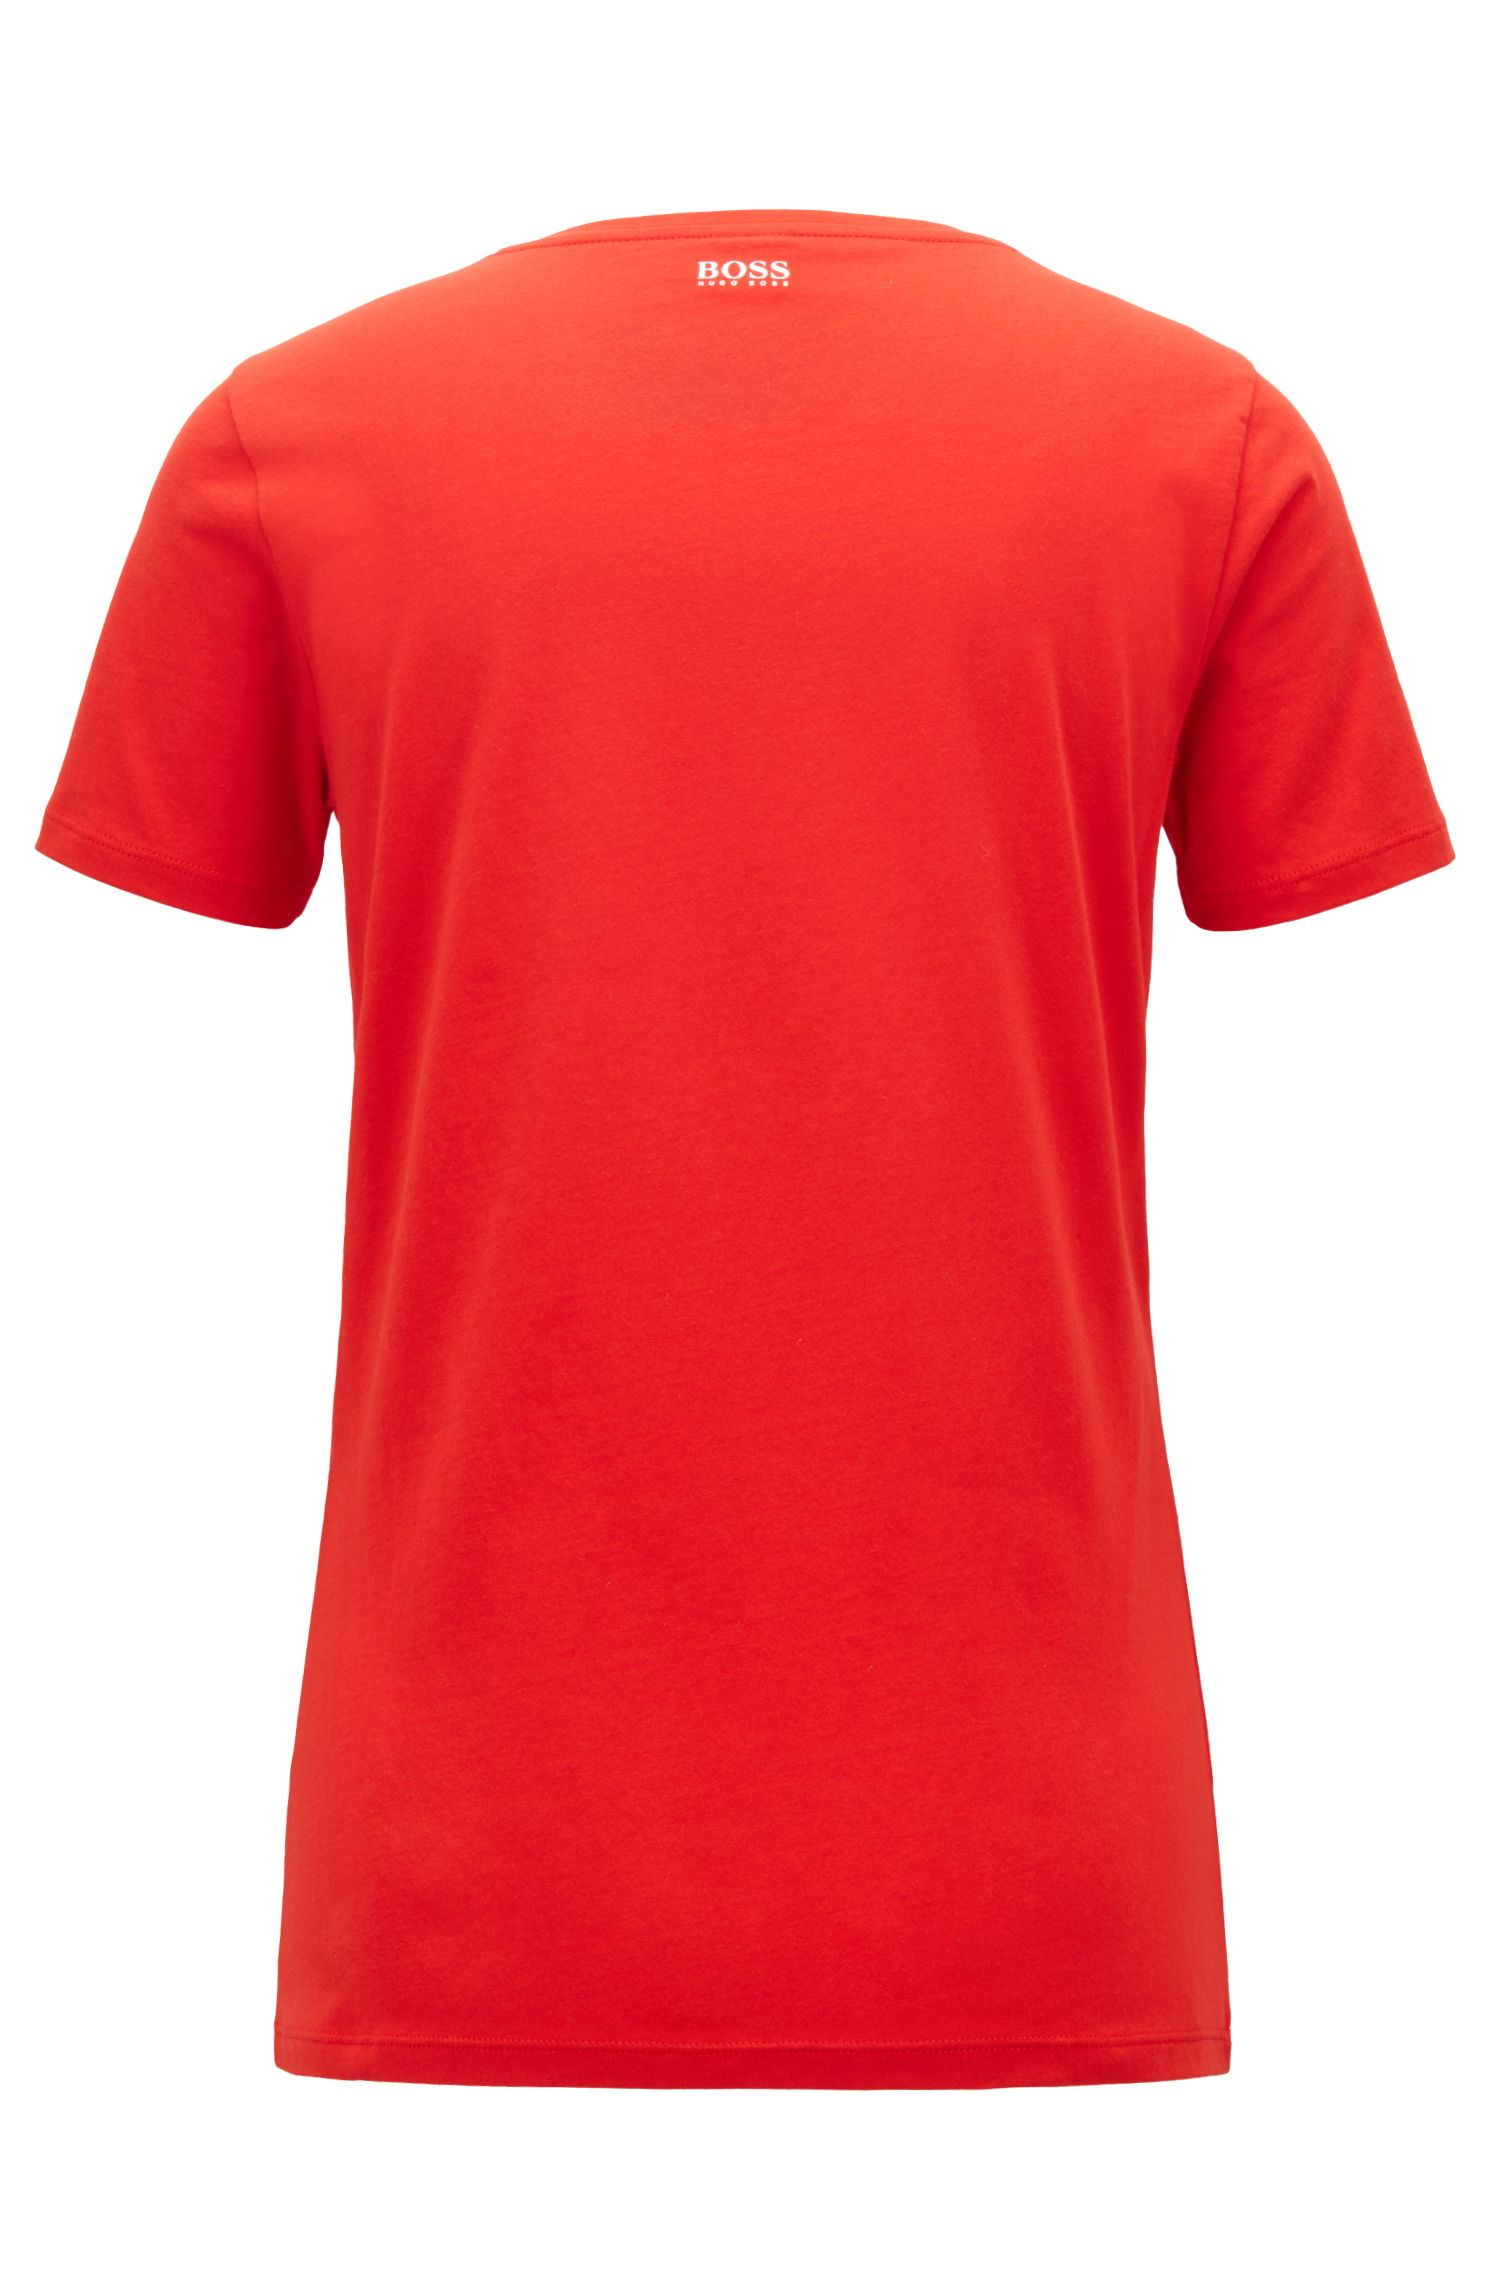 T-shirt Slim Fit en jersey de coton à message imprimé, Rouge